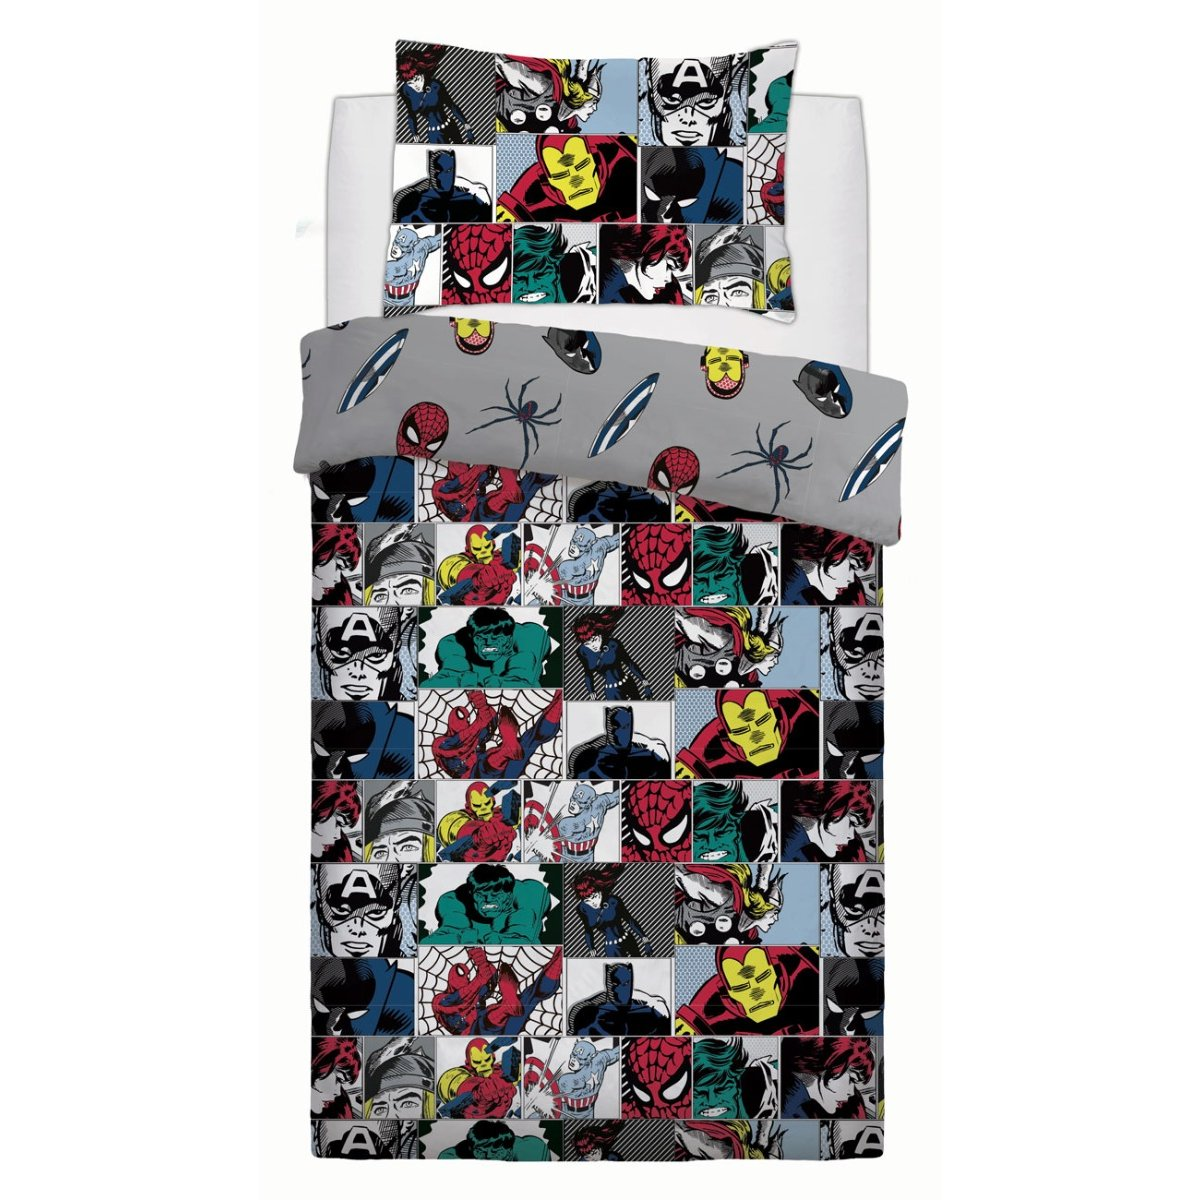 Marvel Colour Pop Bedding - Reversible Duvet Cover and Pillowcase Set